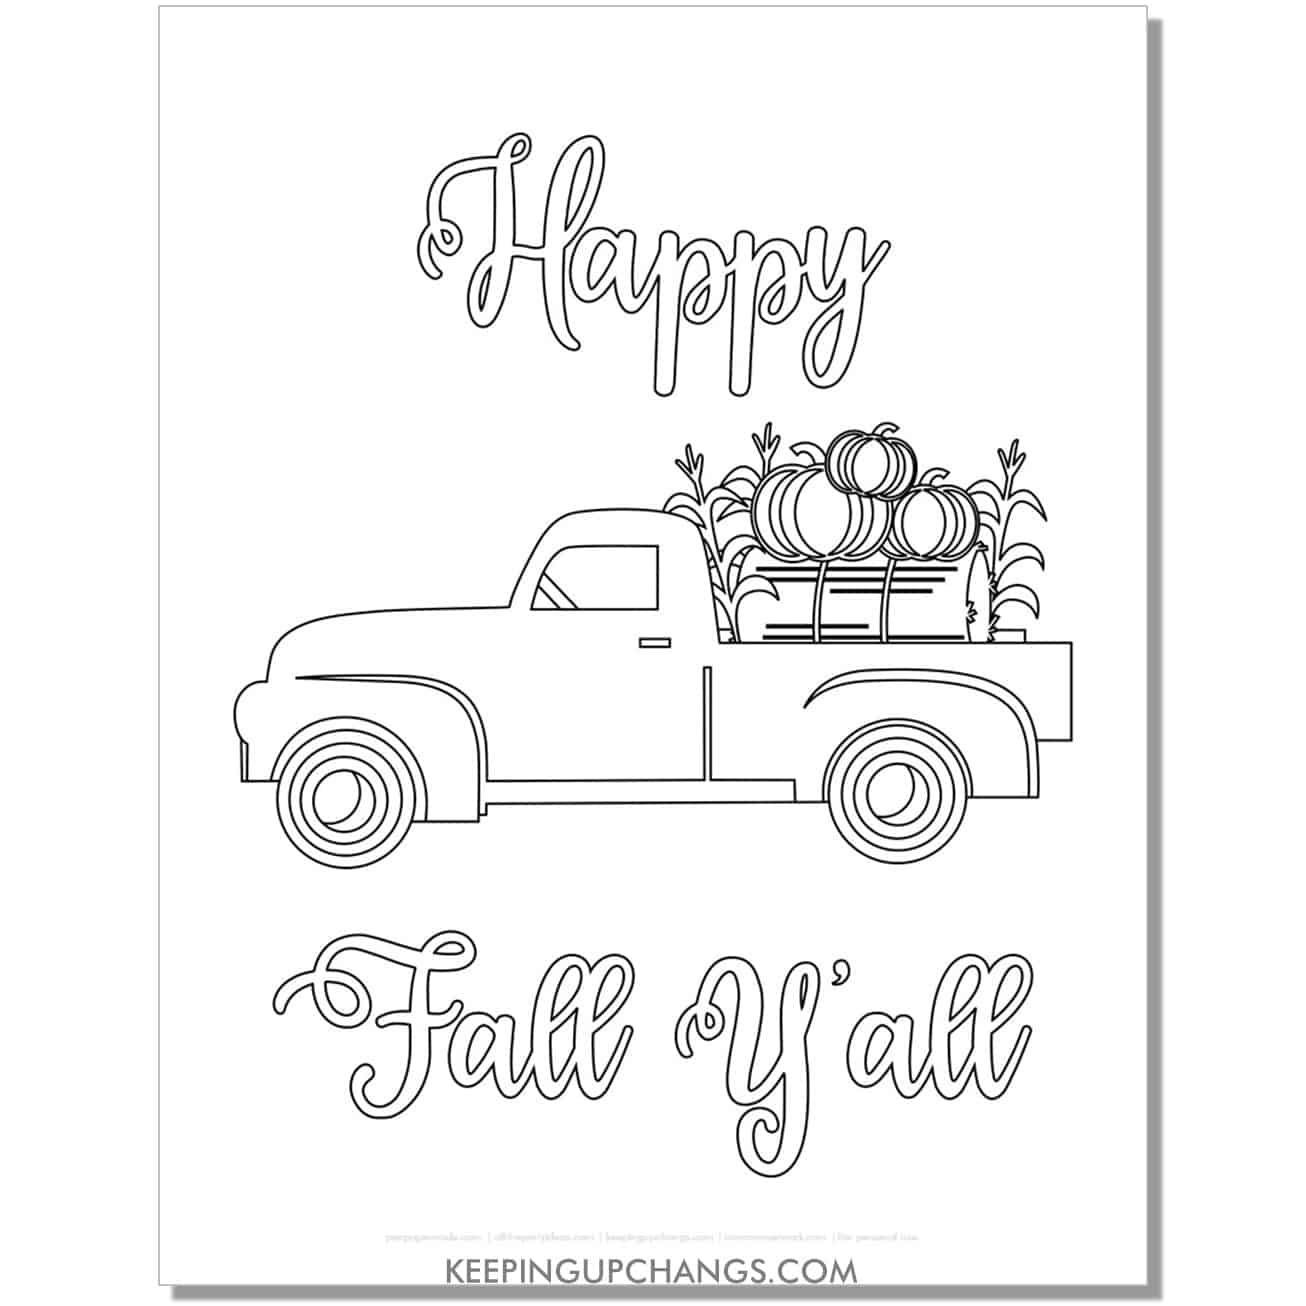 free happy fall yall vintage truck with pumpkins coloring page.